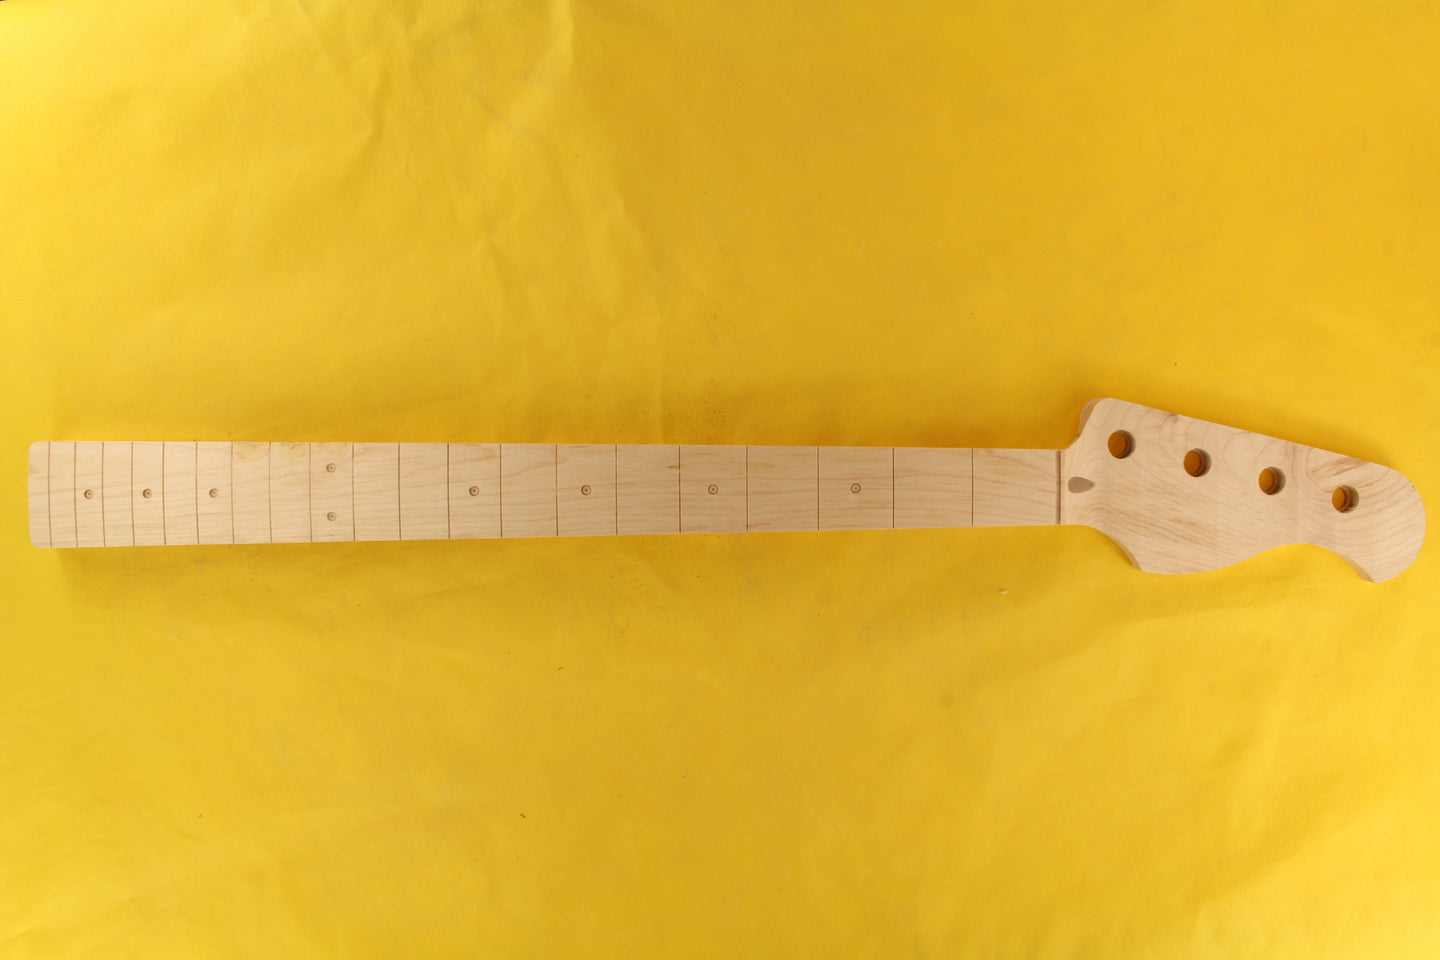 Maple Bass Neck - 701808